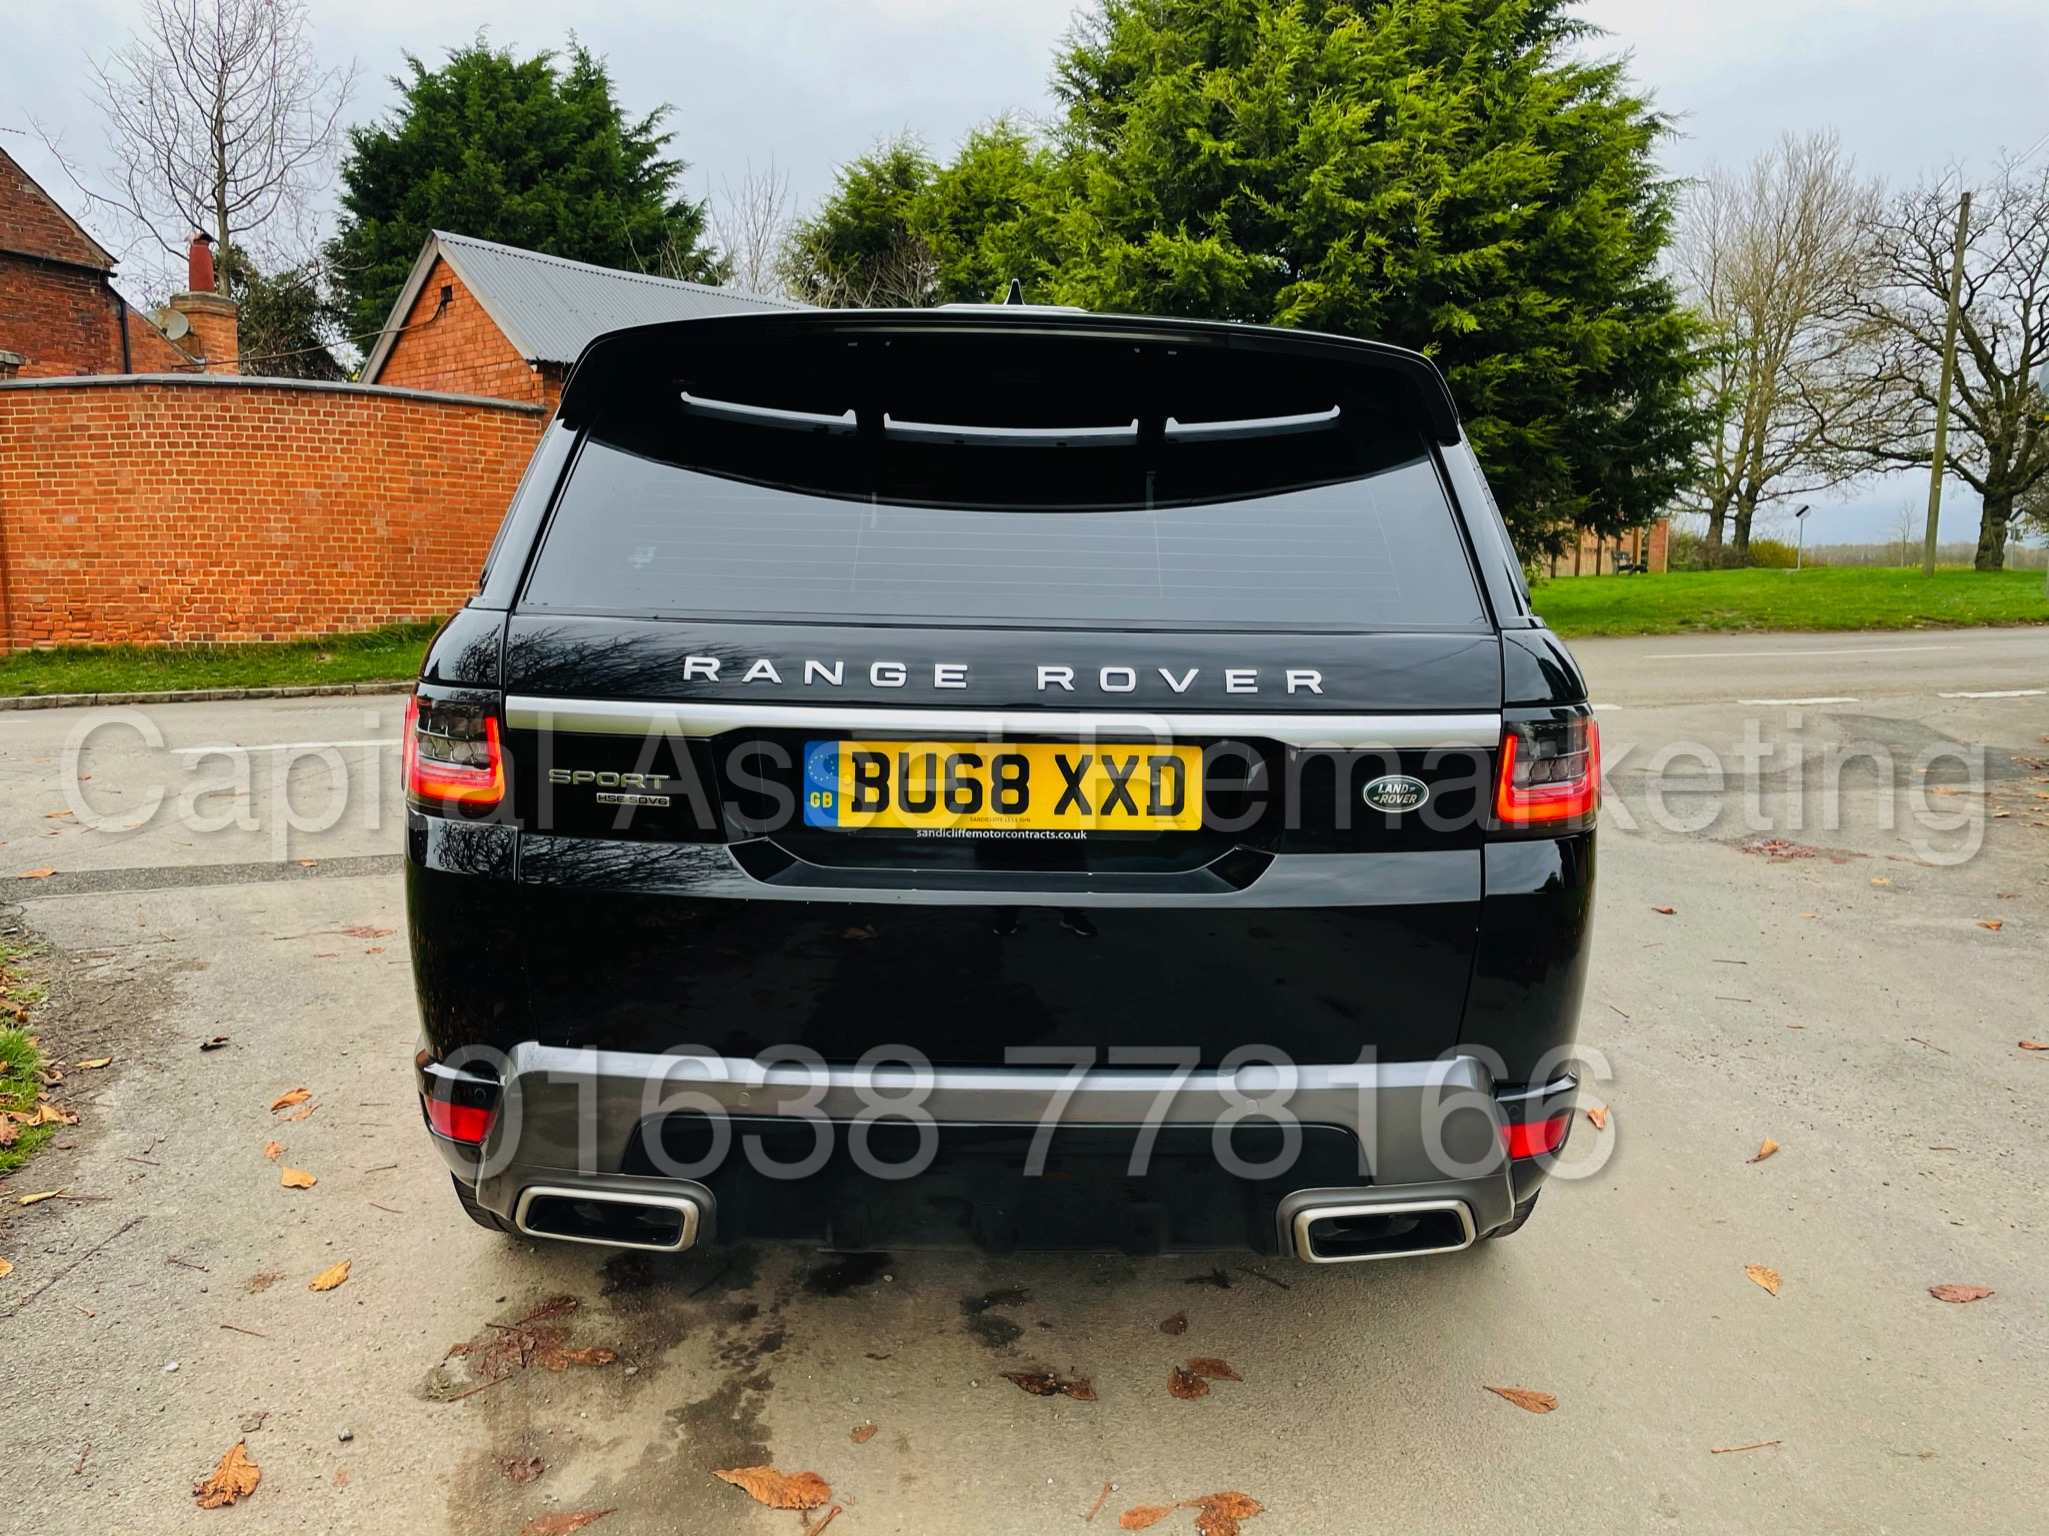 RANGE ROVER SPORT *HSE EDITION* SUV (2019 MODEL) '3.0 SDV6 - 306 BHP - 8 SPEED AUTO' *FULLY LOADED* - Image 11 of 56